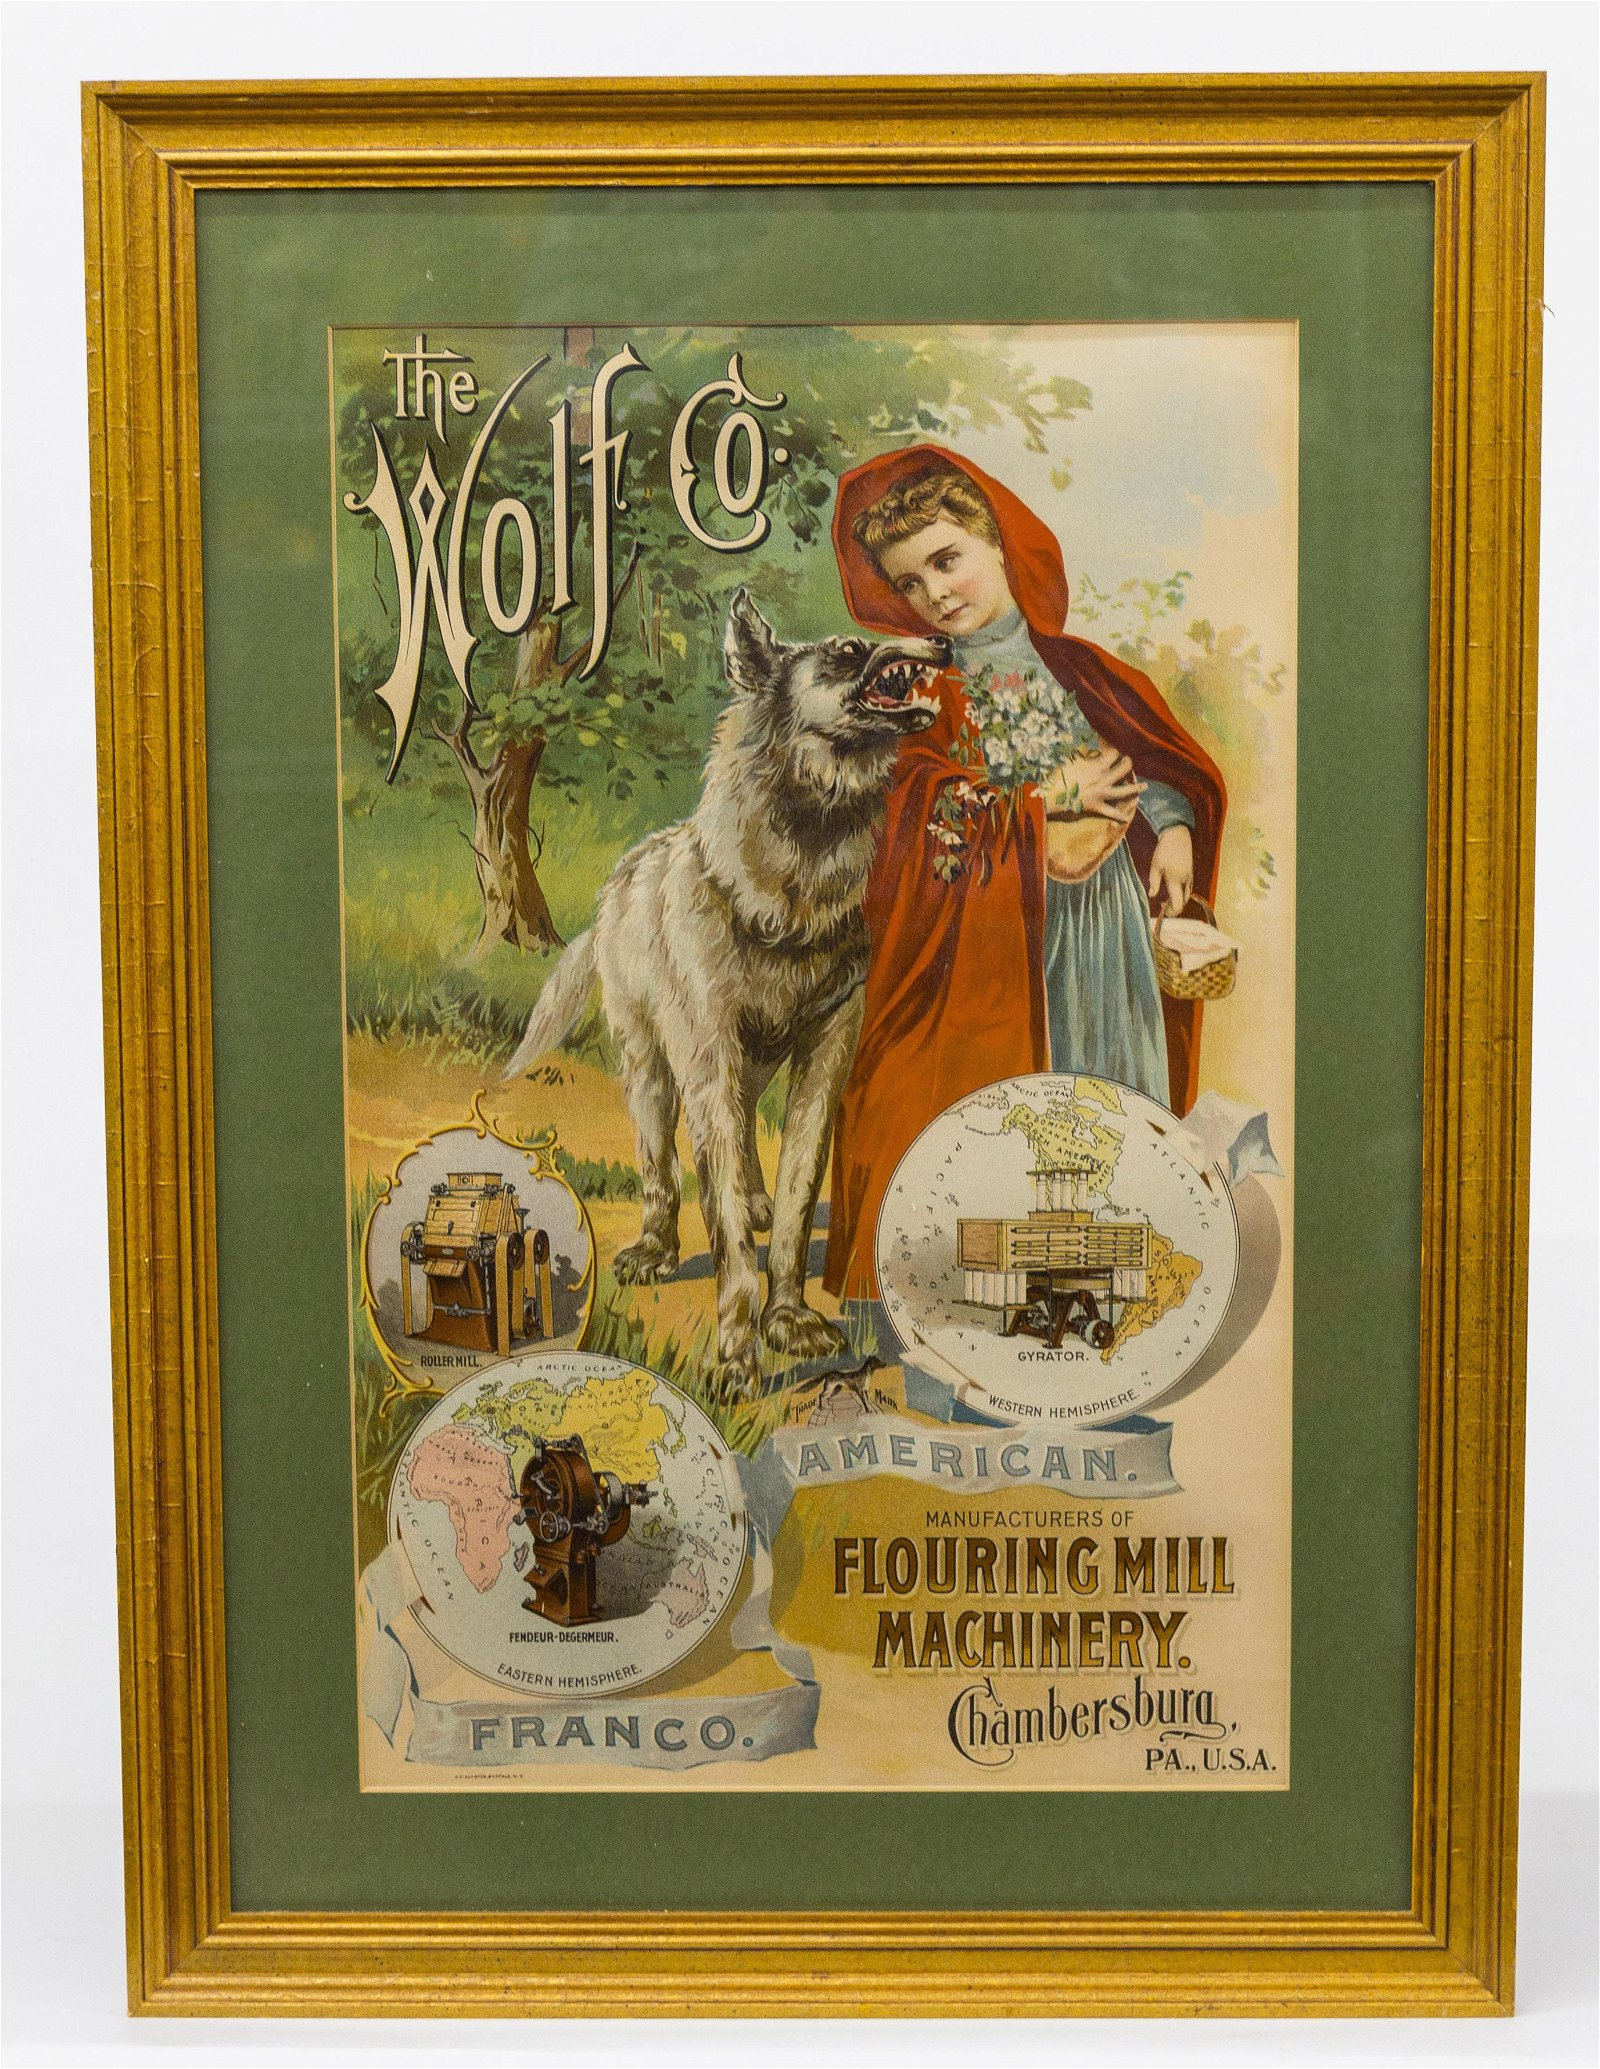 The Wolf Co. Machinery Sign